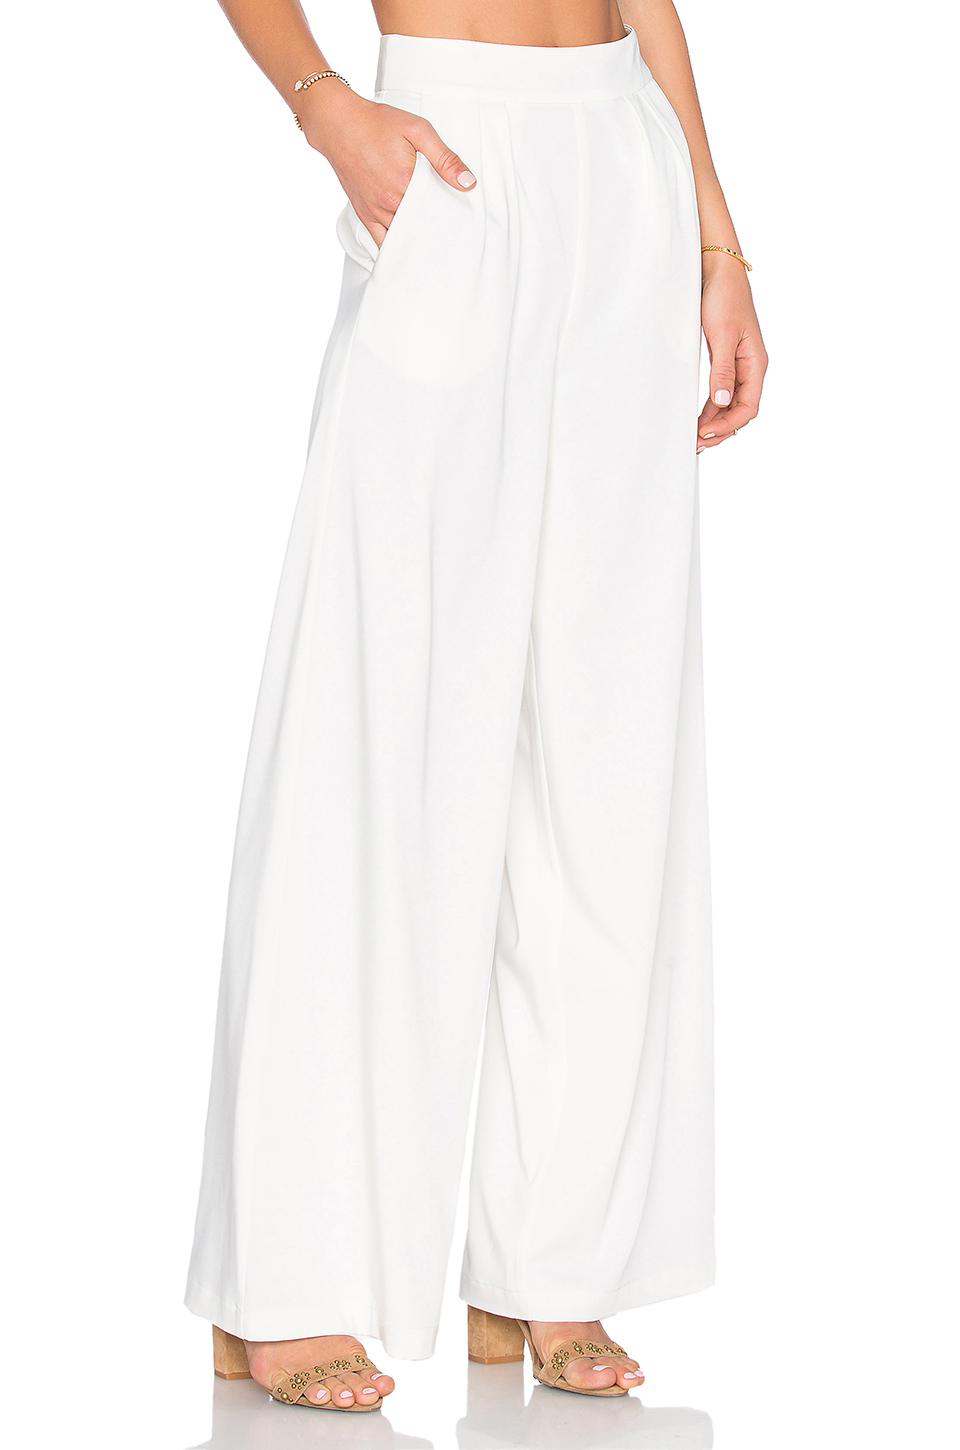 X Revolve Charlie Wide Leg by House of Harlow 1960